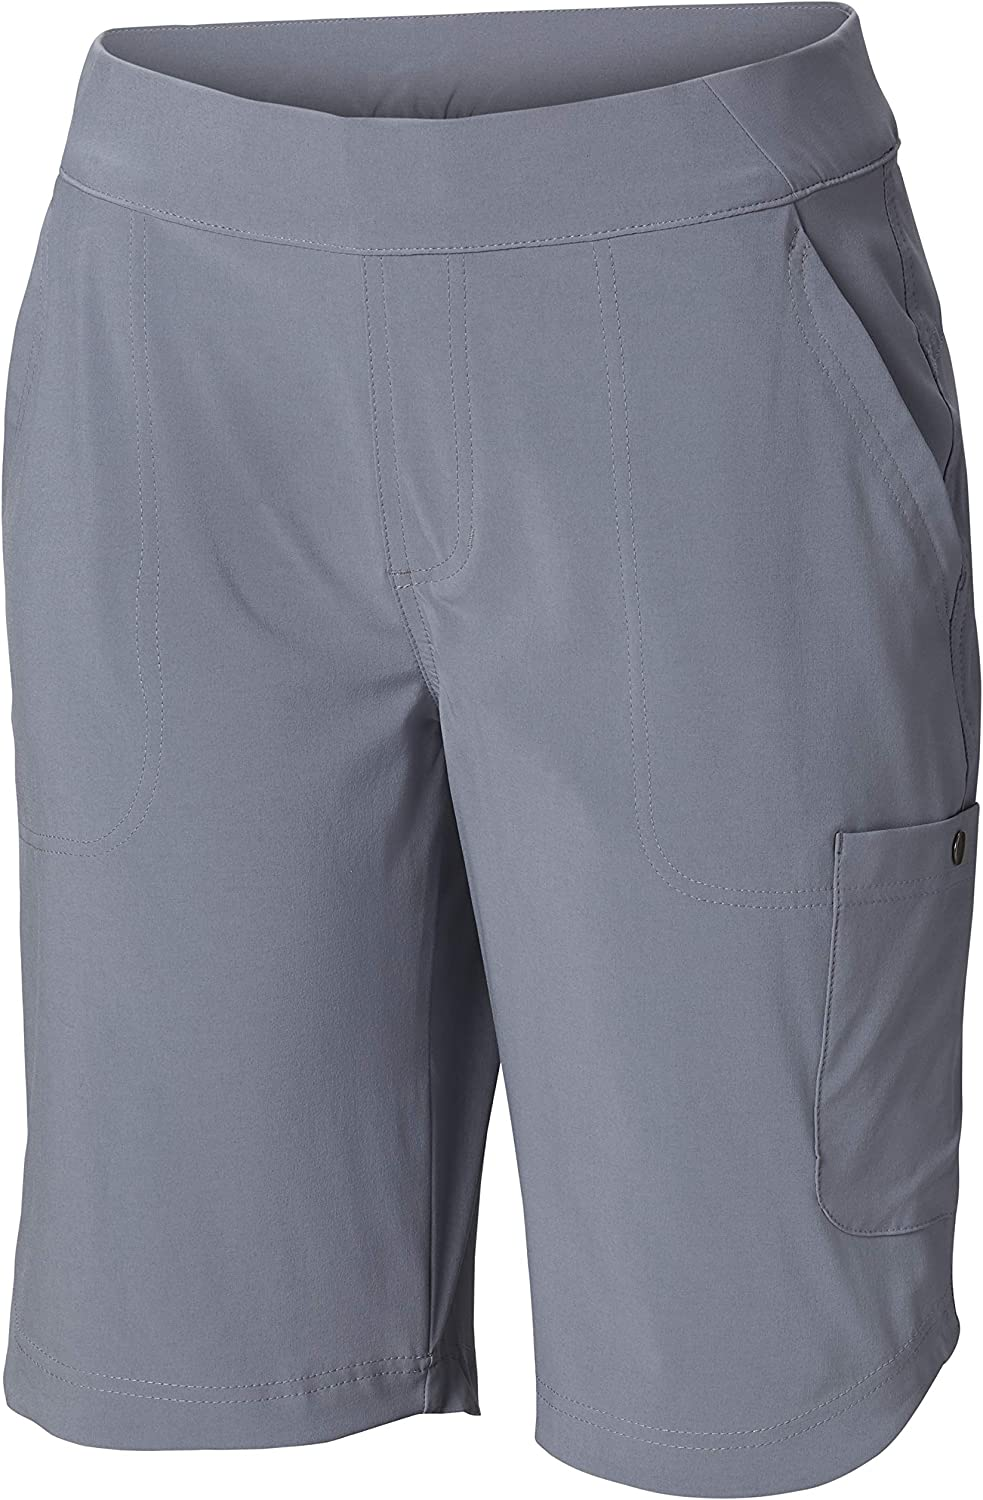 Columbia Women's Place to Long Water Stain Max 49% OFF Short Resist security